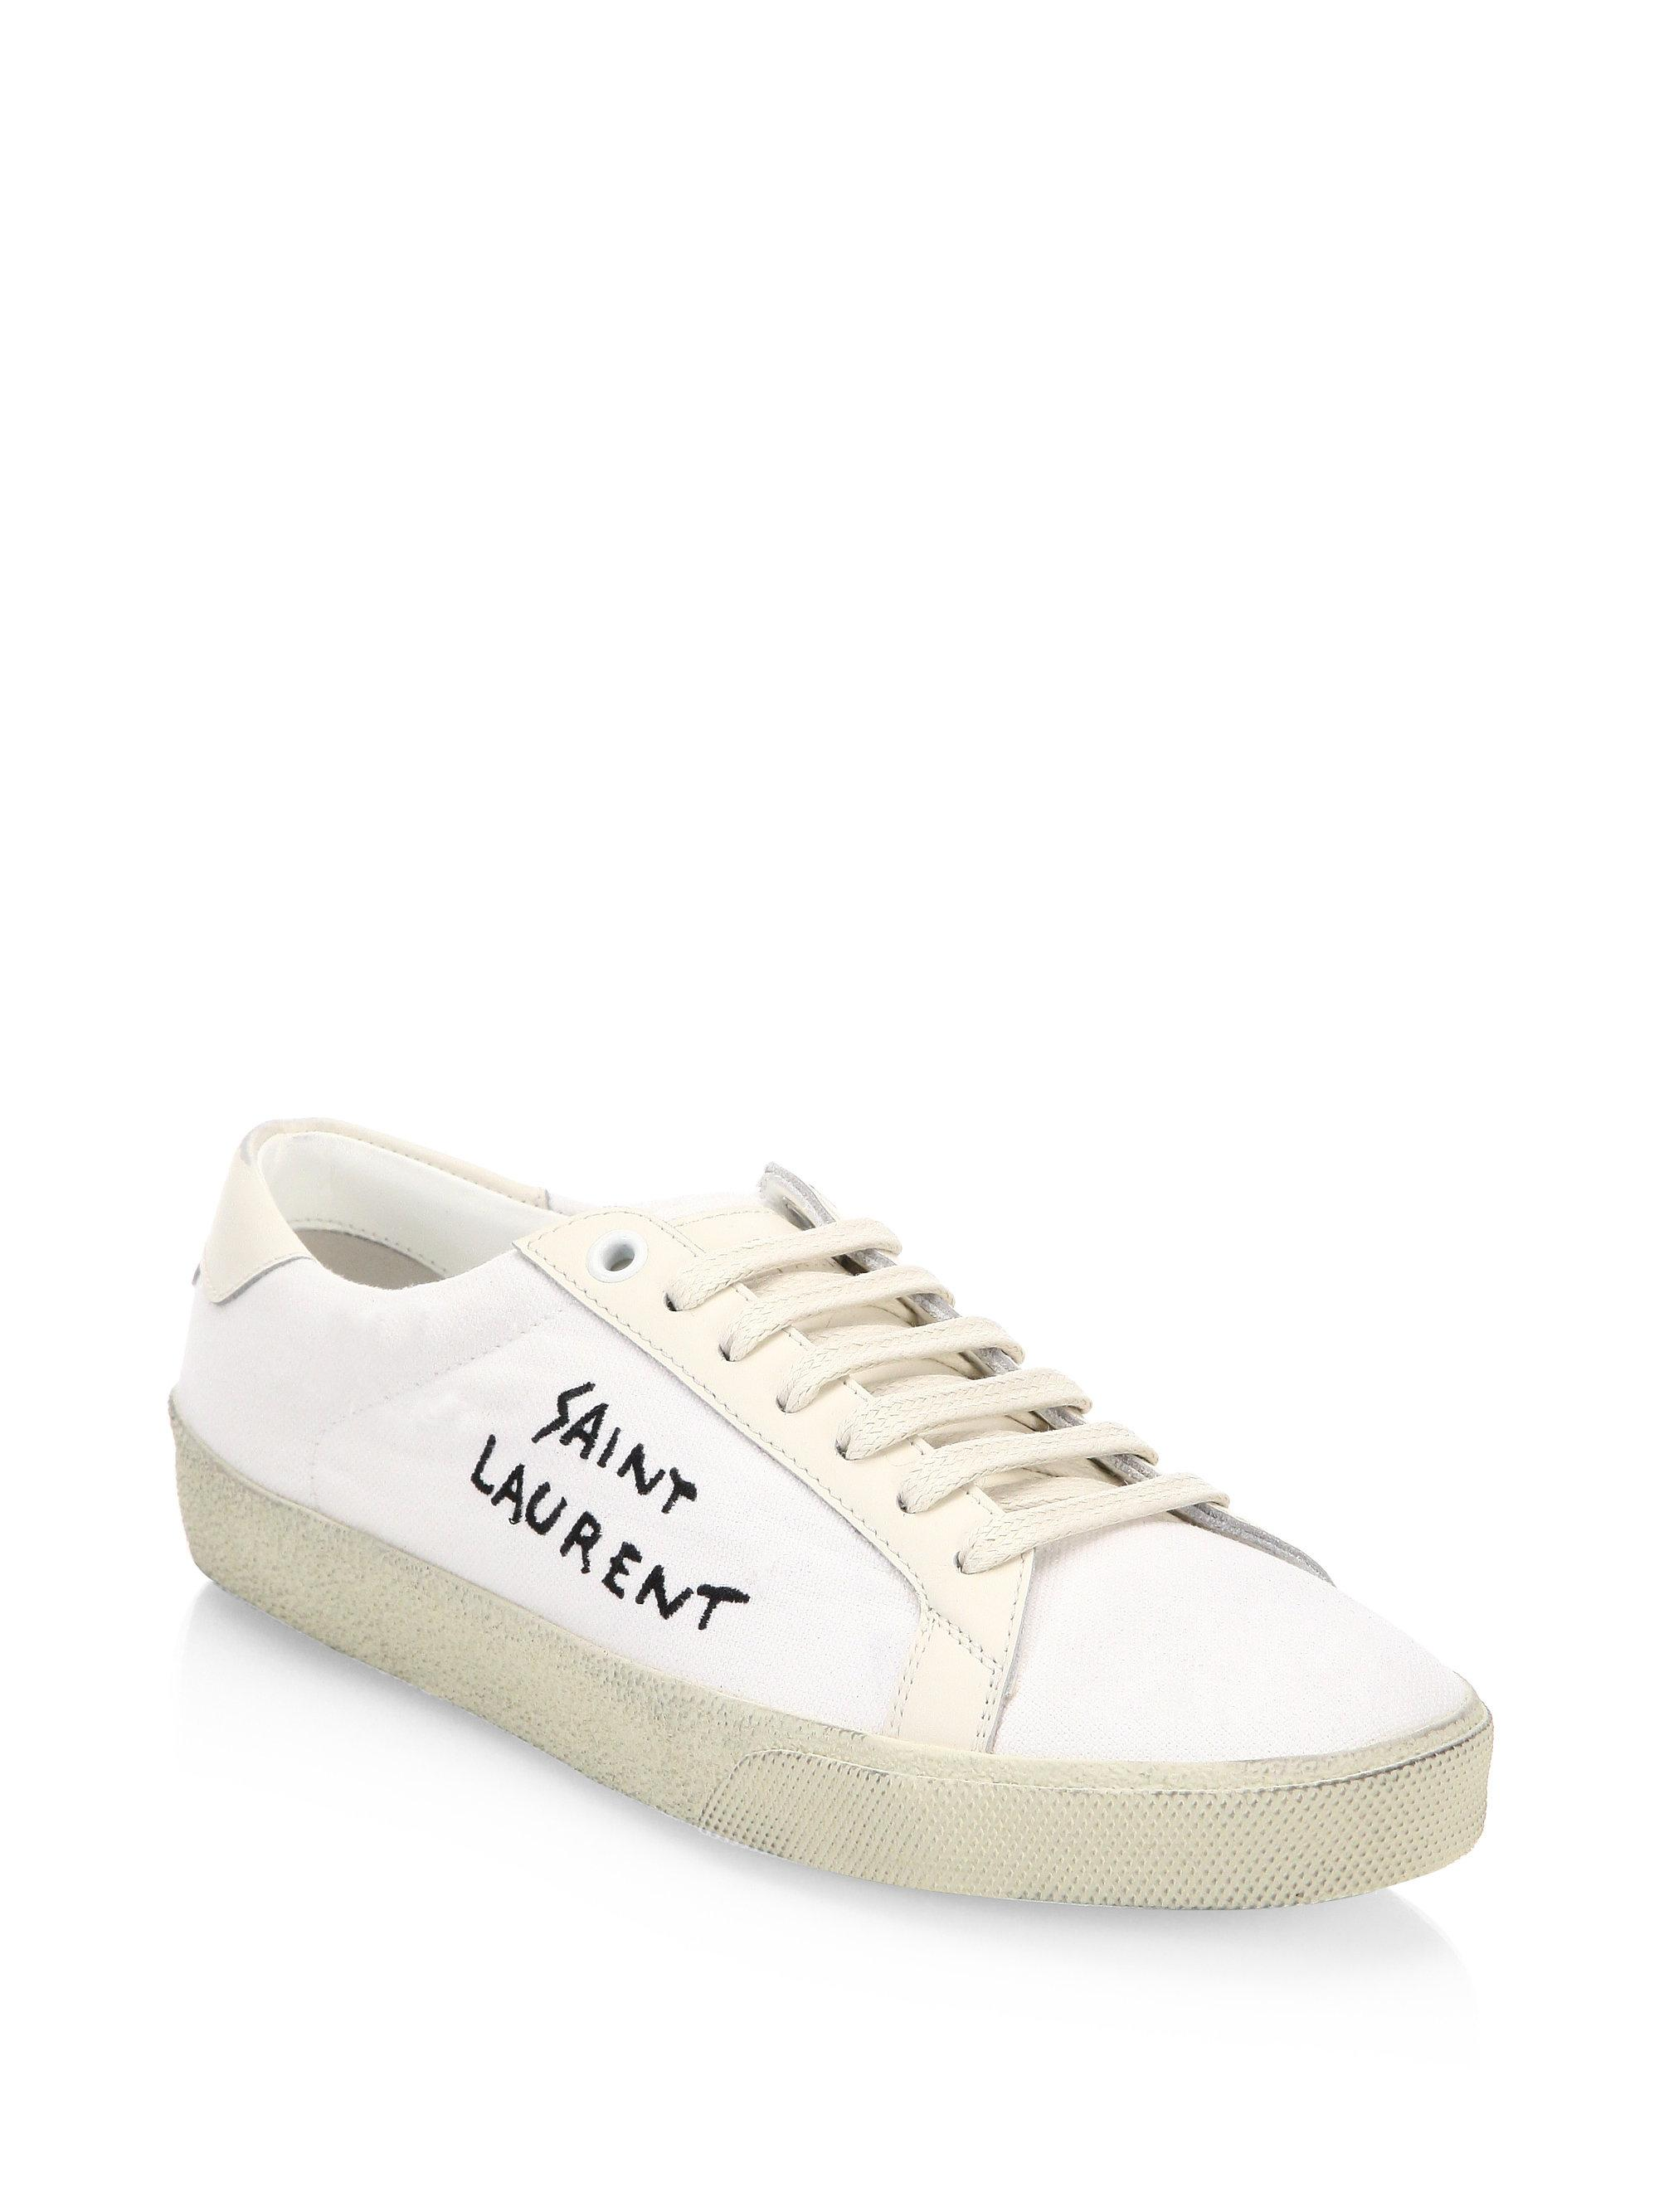 Saint Laurent Vintage Low Top Sneakers 5RxAdy